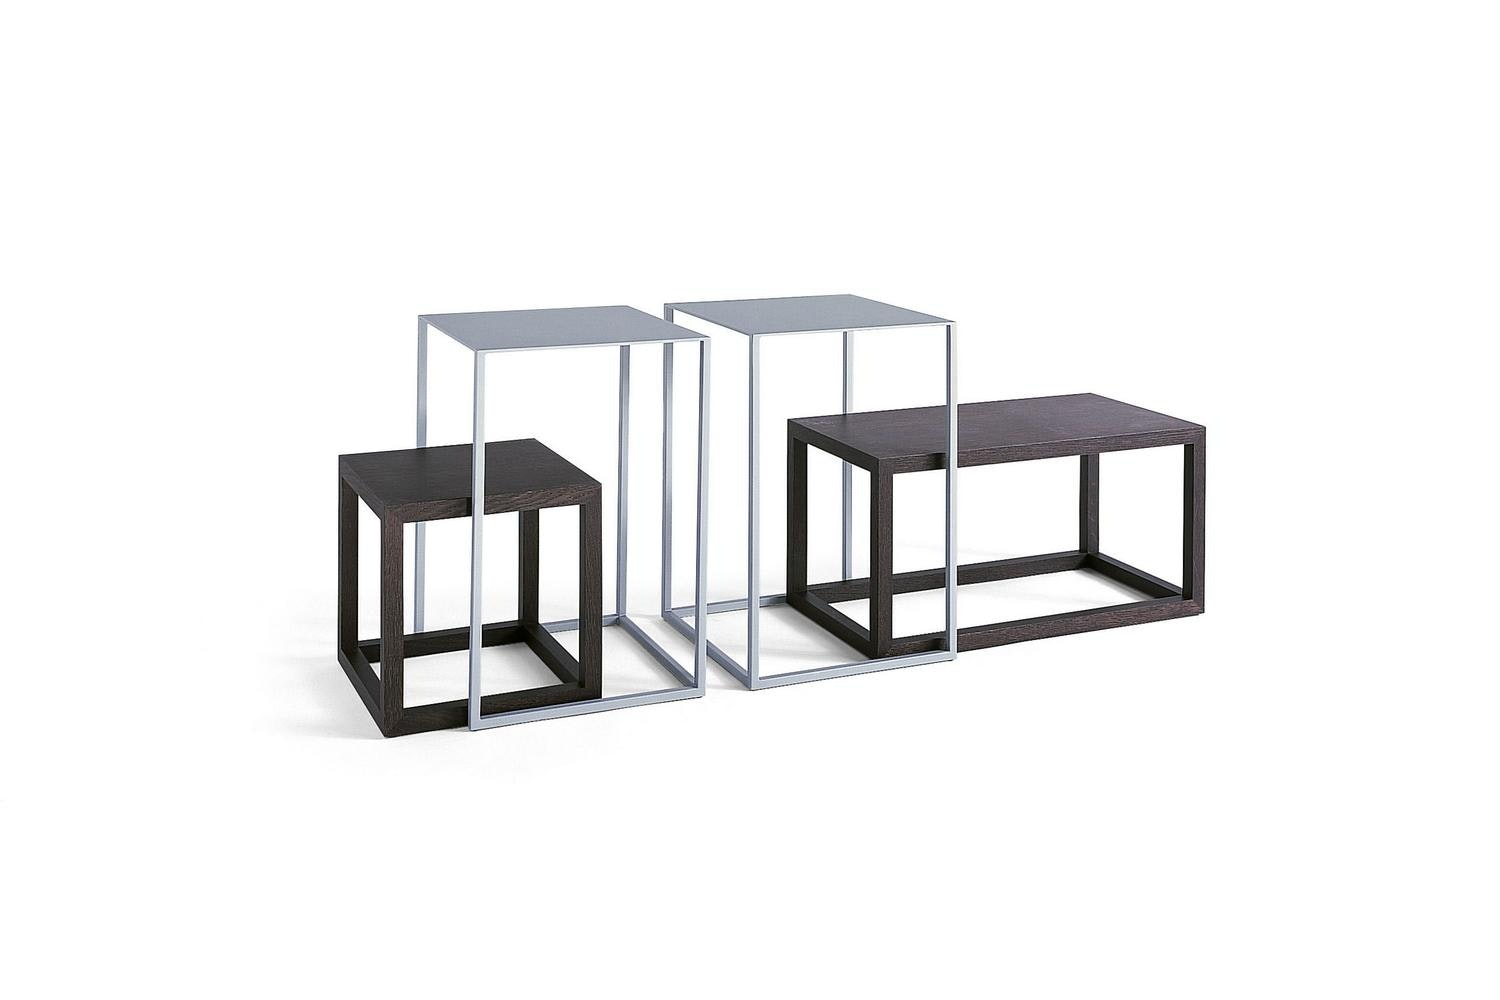 261 Note Coffee Table by Piero Lissoni for Cassina